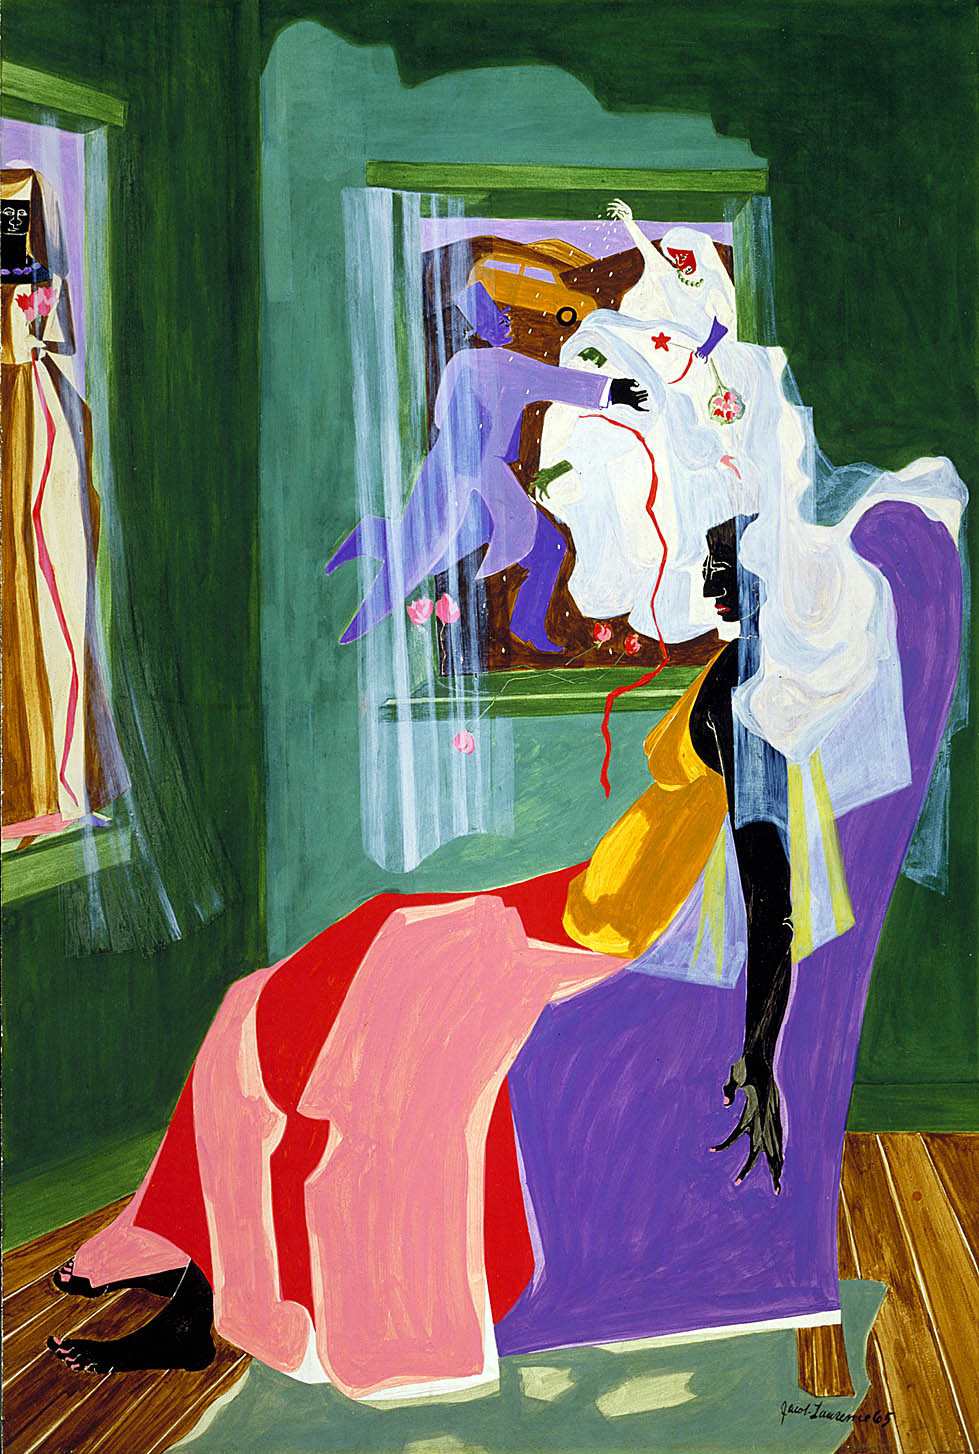 cavetocanvas:  Jacob Lawrence, Dreams No. 2, 1965 From the Smithsonian American Art Museum:  Jacob Lawrence was inspired by the women in his Harlem neighborhood. Like his own mother, they worked hard to support their families and survived on very little money. In this painting a girl rests on a chair in front of two large windows. In one, a tall, elegant lady stands with a bouquet of flowers and in the other, a bride and groom dance and throw confetti. Windows and doorways were focal points of New York's brownstone neighborhoods, creating a link to life on the streets outside. But the bride and groom are clearly in a landscape beyond the city, and in this sense the windows have become screens onto which the young woman projects her fantasies.